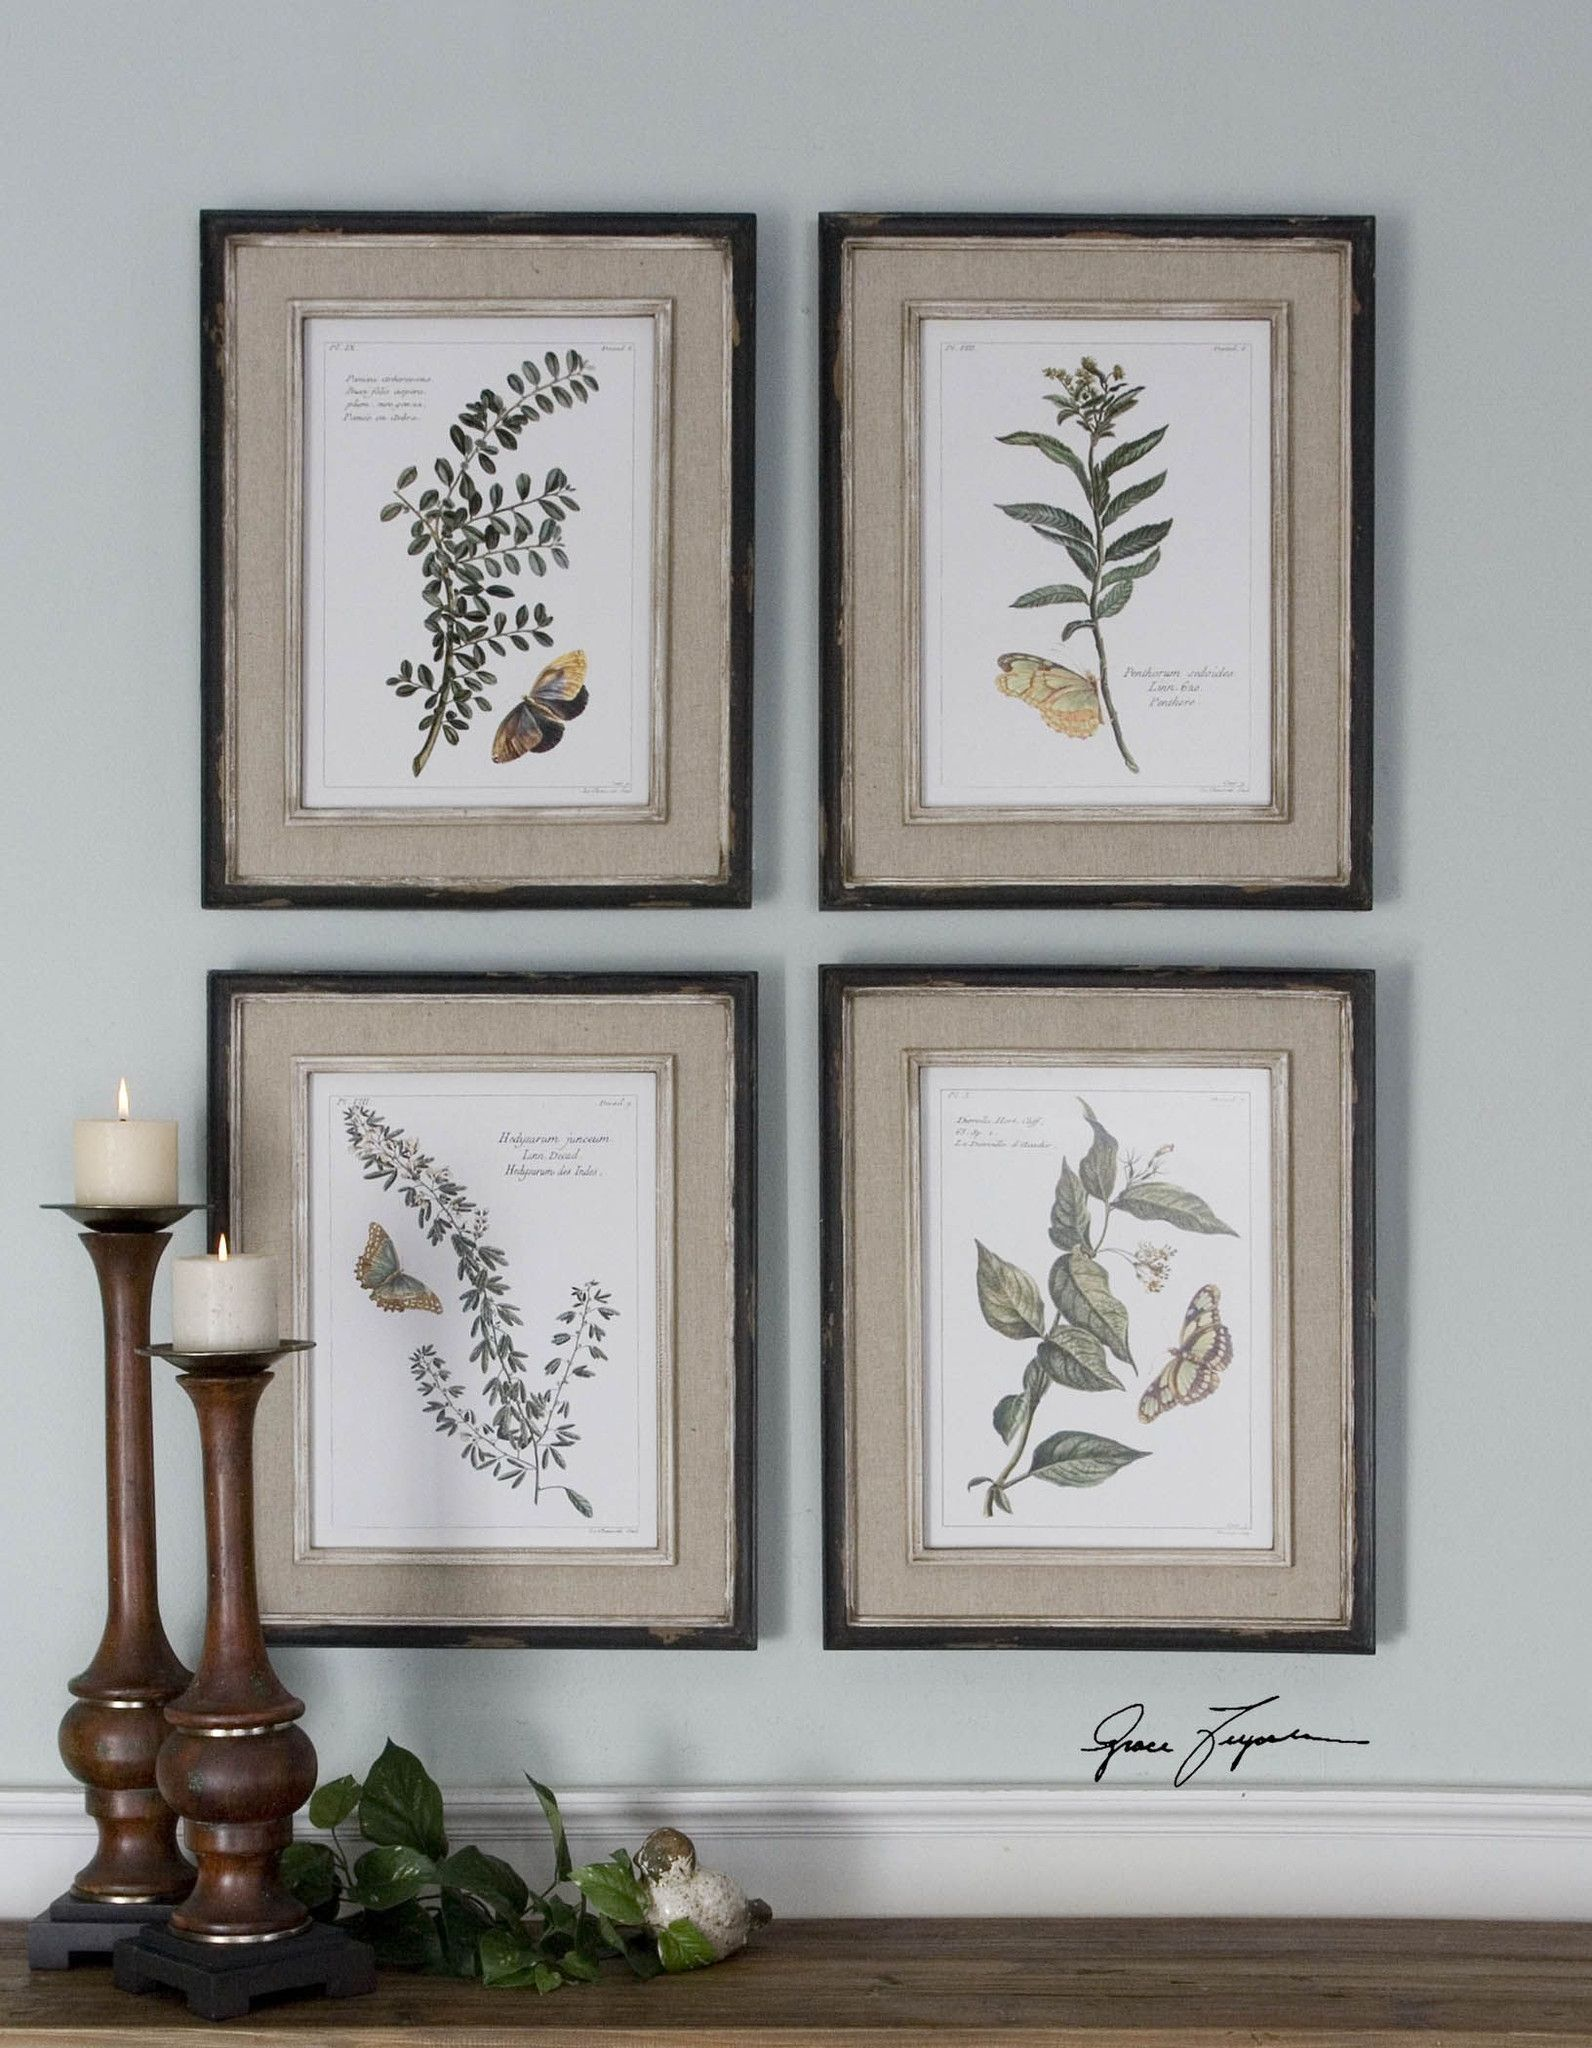 Uttermost Butterfly Plants Framed Art, S/4 | Products | Pinterest ...